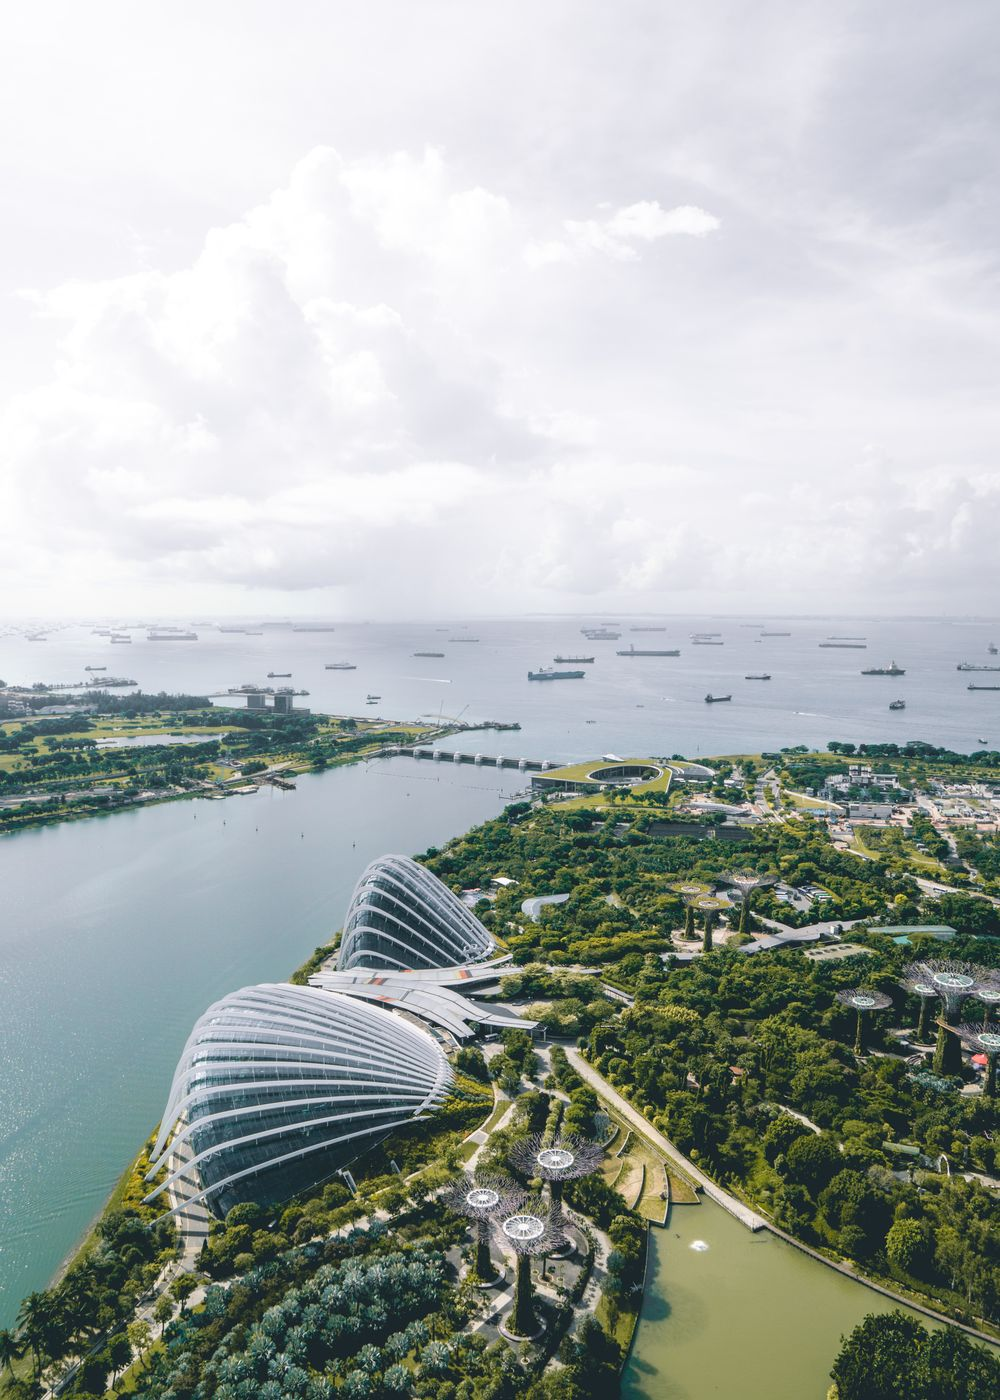 Gardens by the Bay as you see it from the Marina Bay Sands observation deck